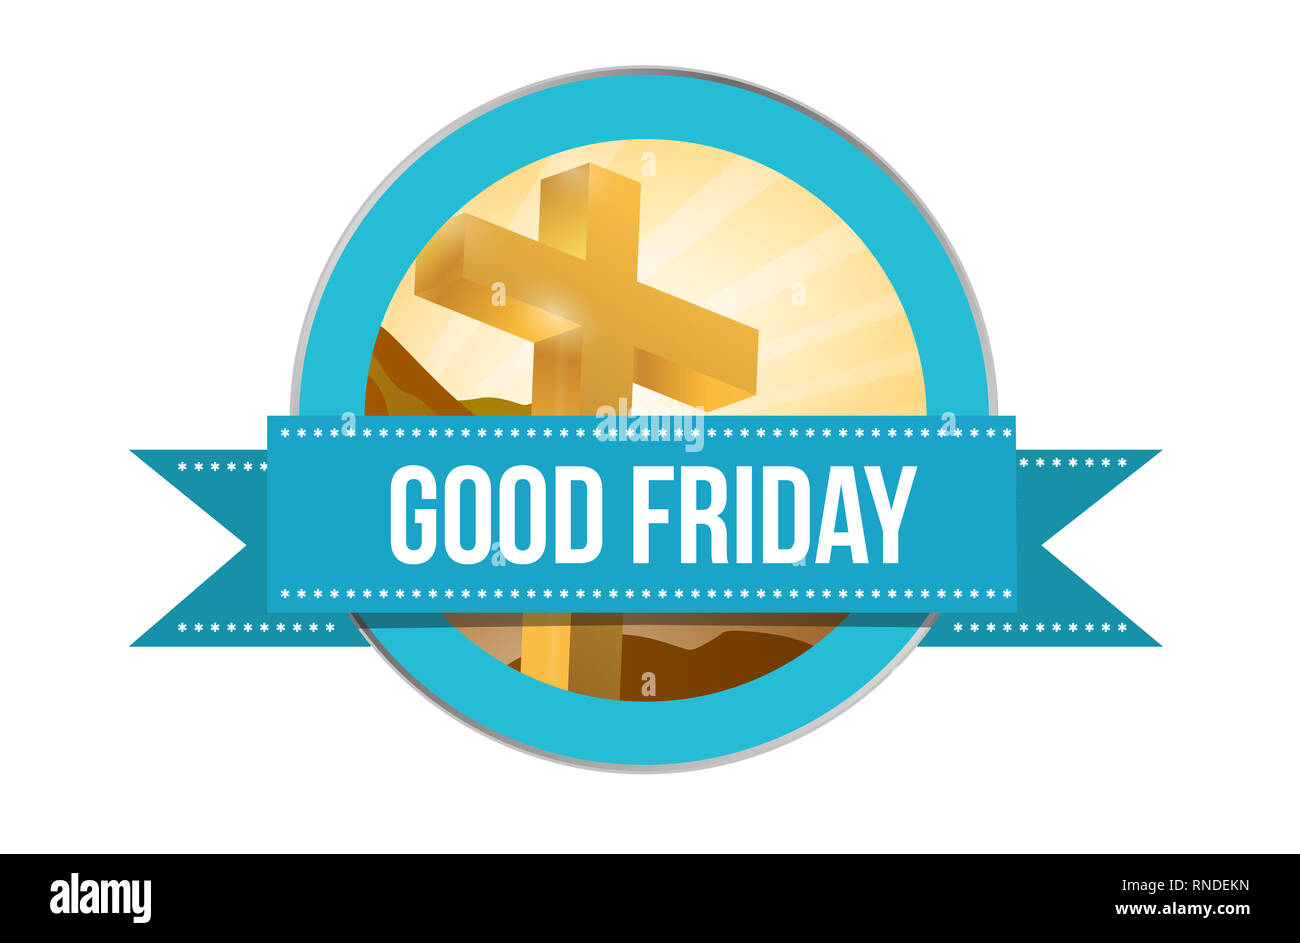 Good Friday day. Religious seal illustration isolated over a white background Stock Photo